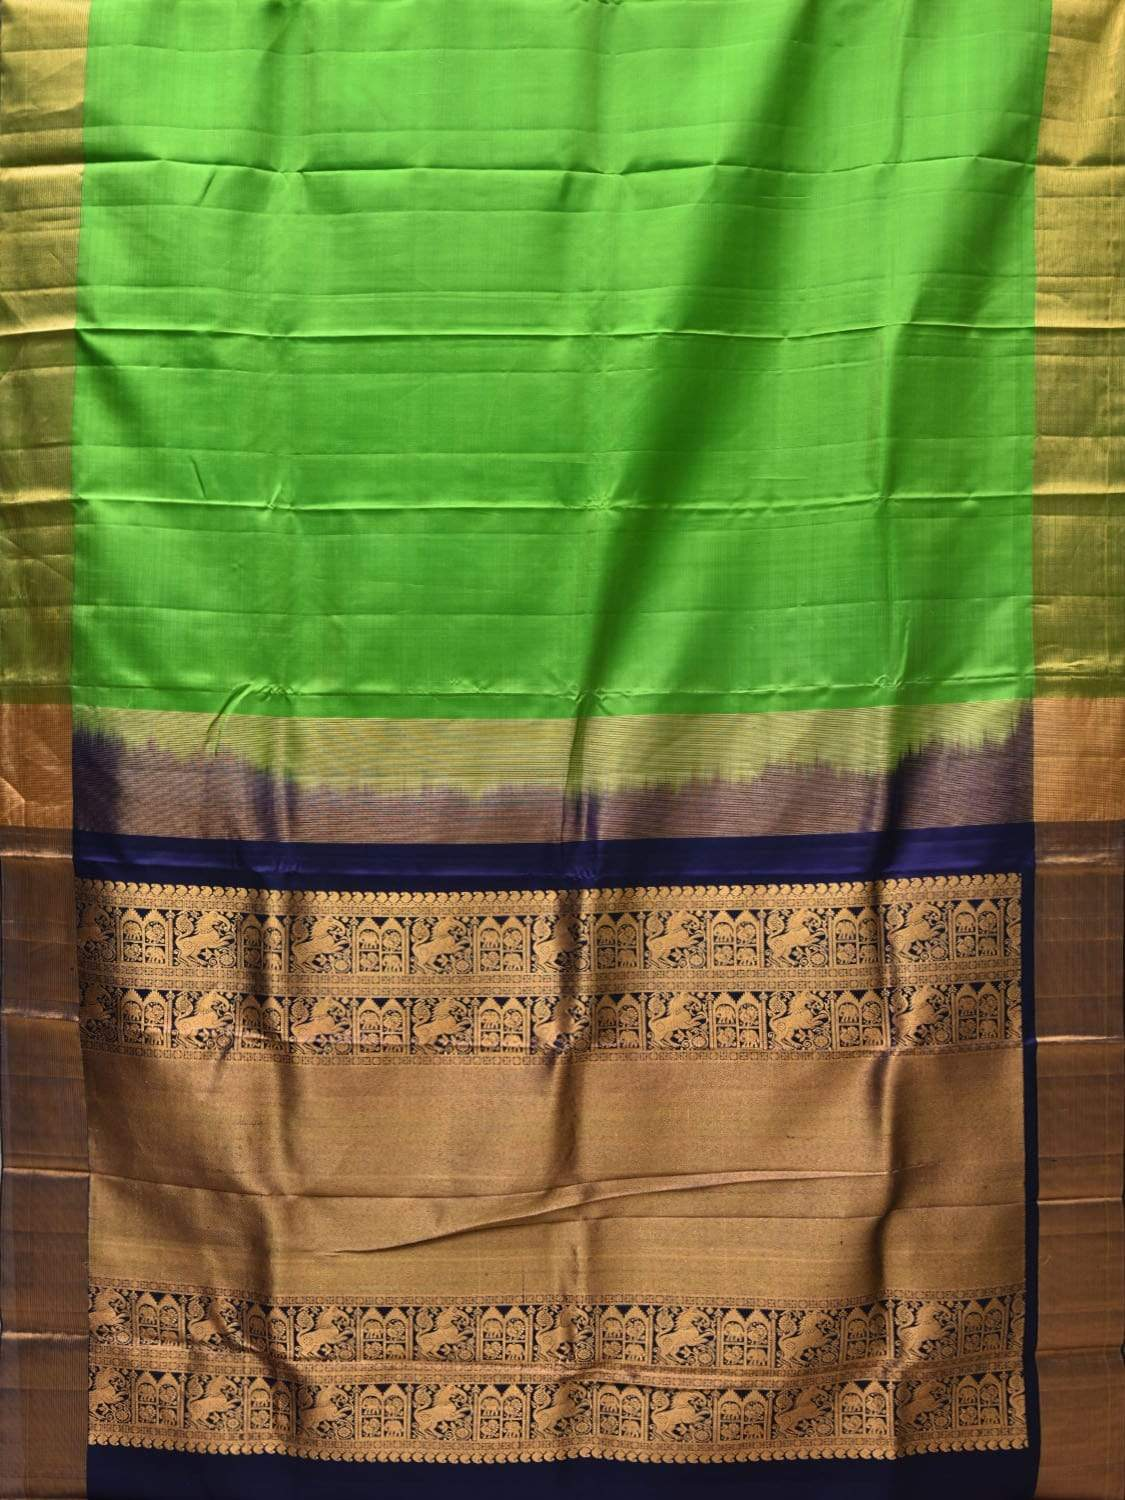 Green Gadwal Silk Handloom Plain Saree with Pallu Design G0252